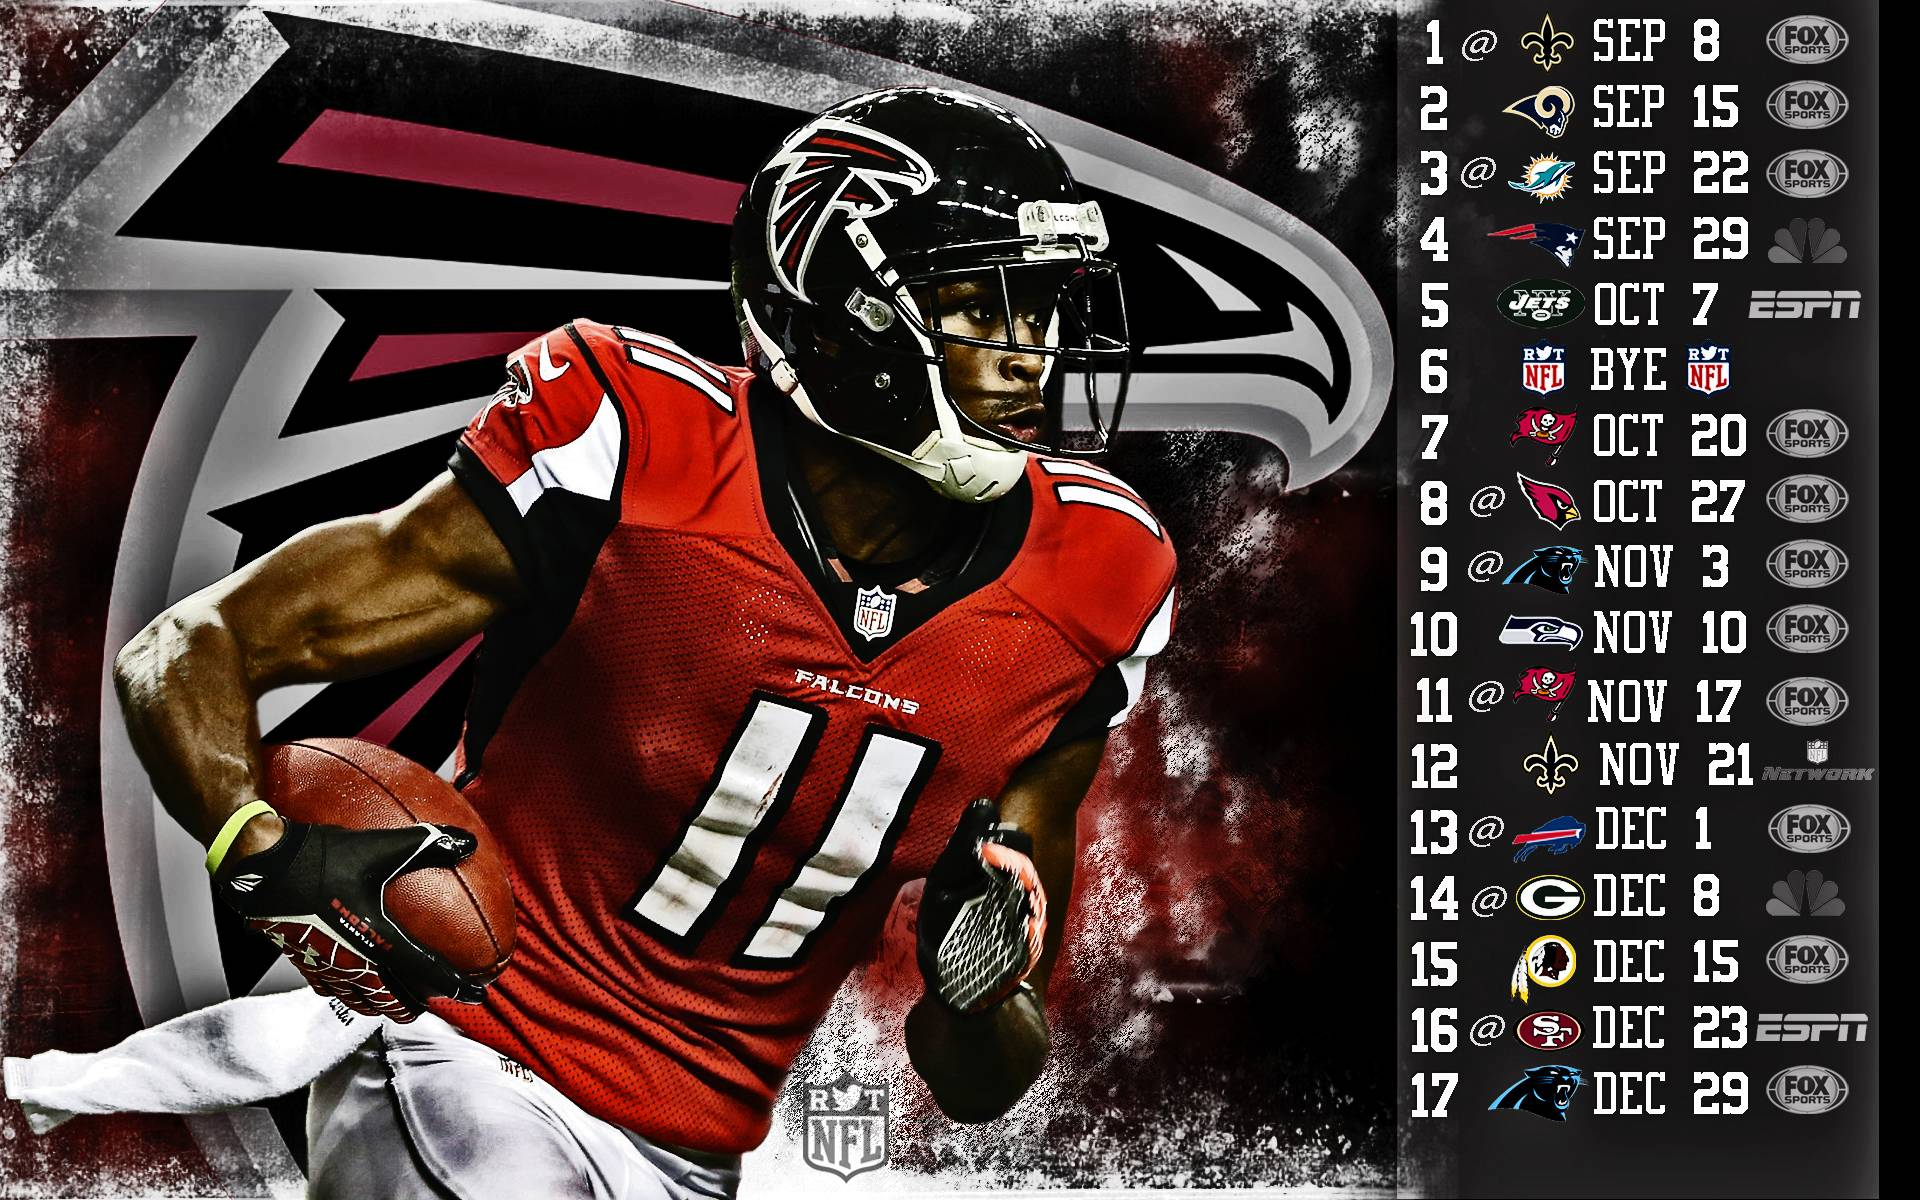 2013 Atlanta Falcons football nfl wallpapers